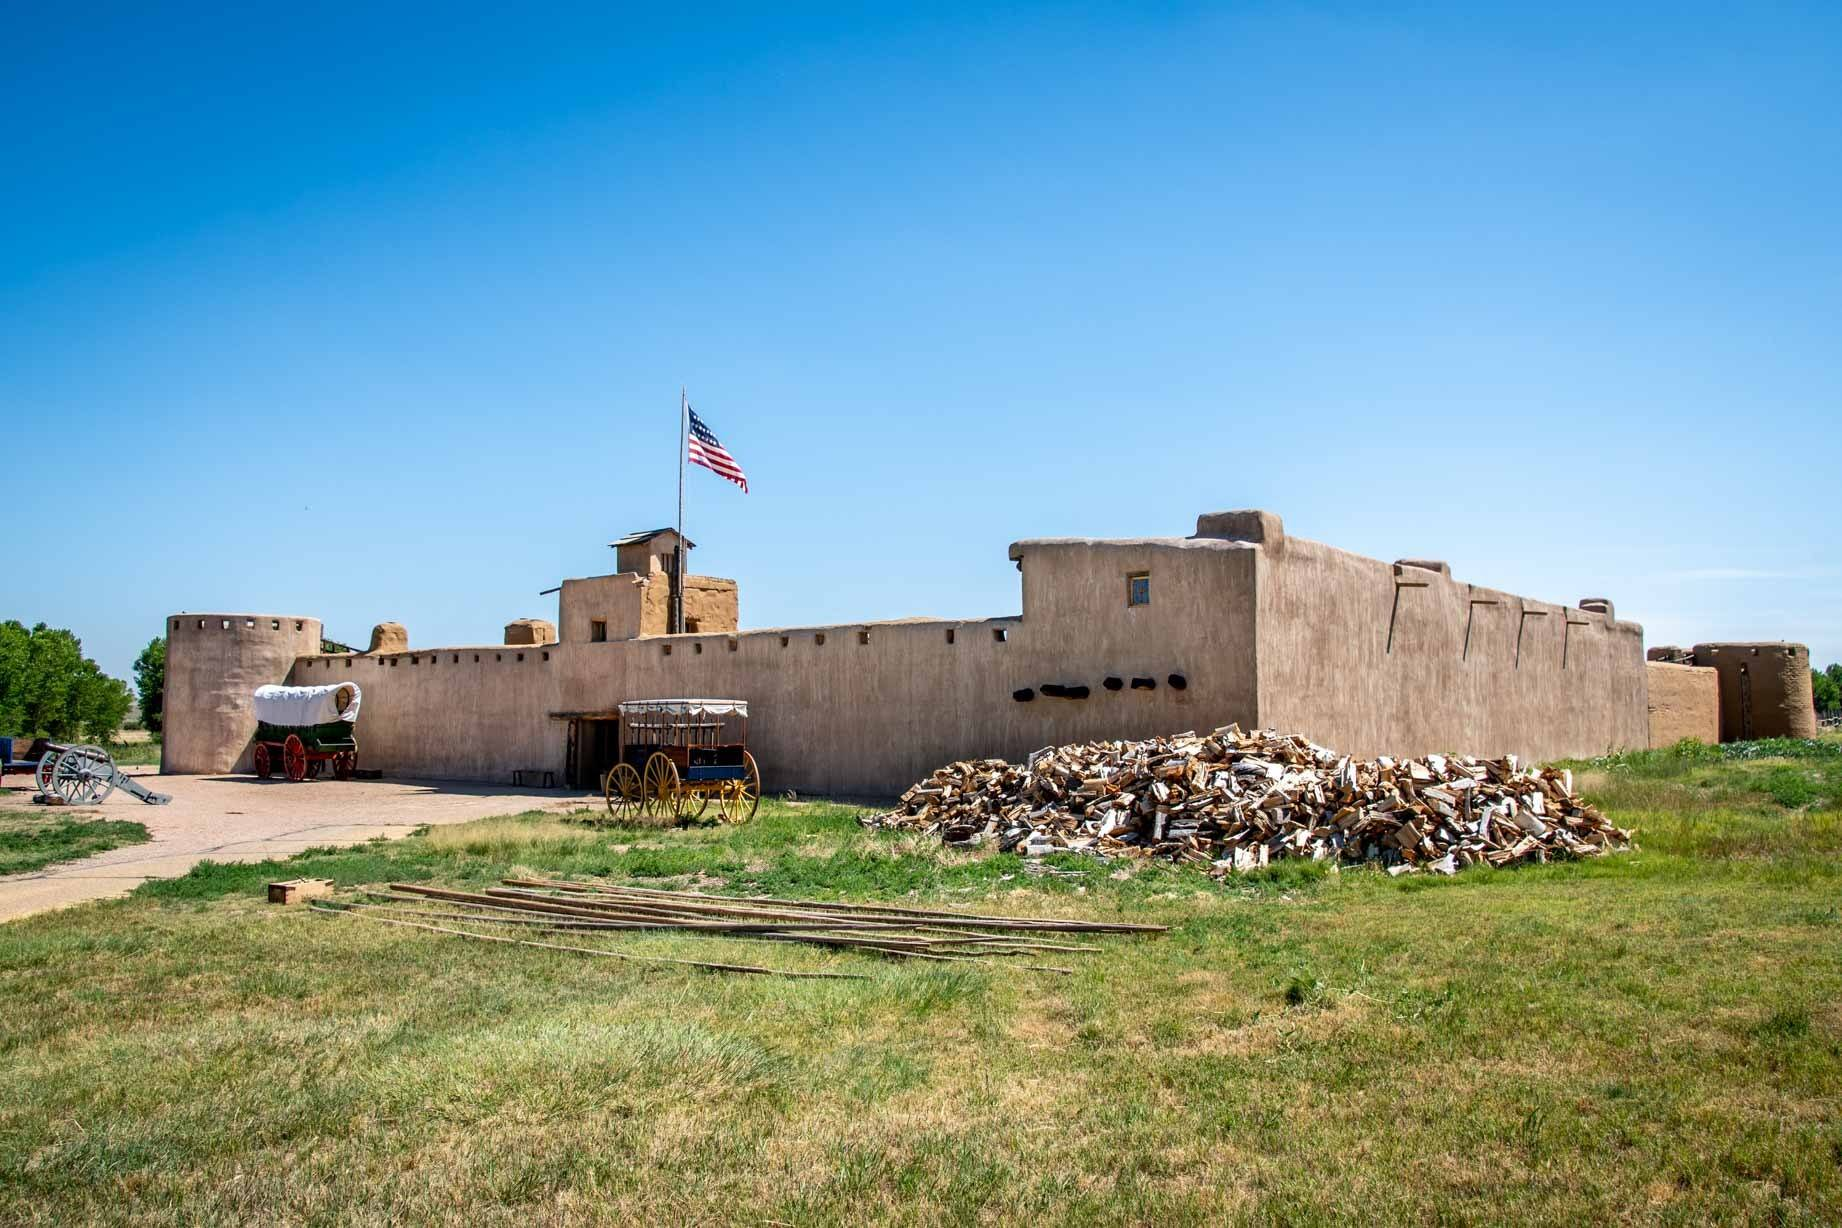 Adobe fort walls with American flag and wagons